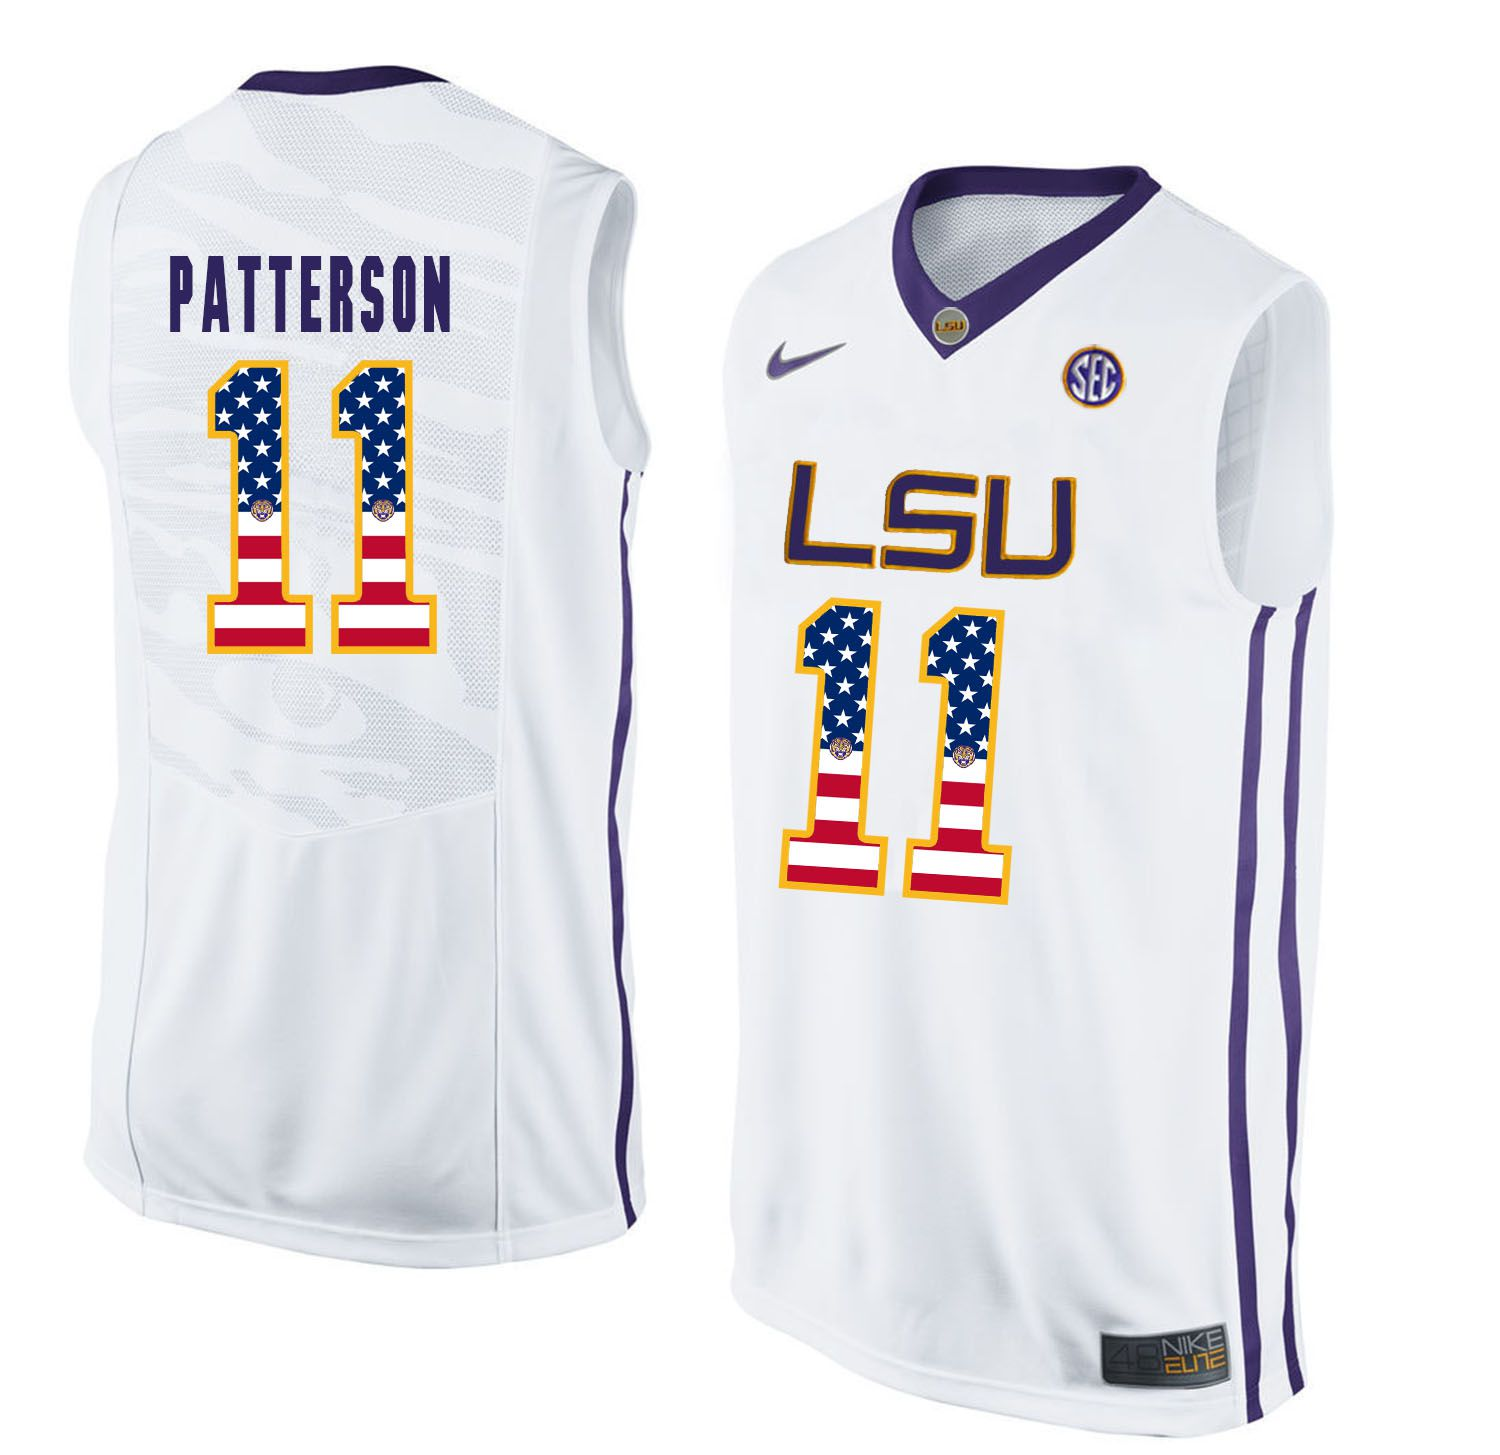 Men LSU Tigers 11 Patterson White Flag Customized NCAA Jerseys